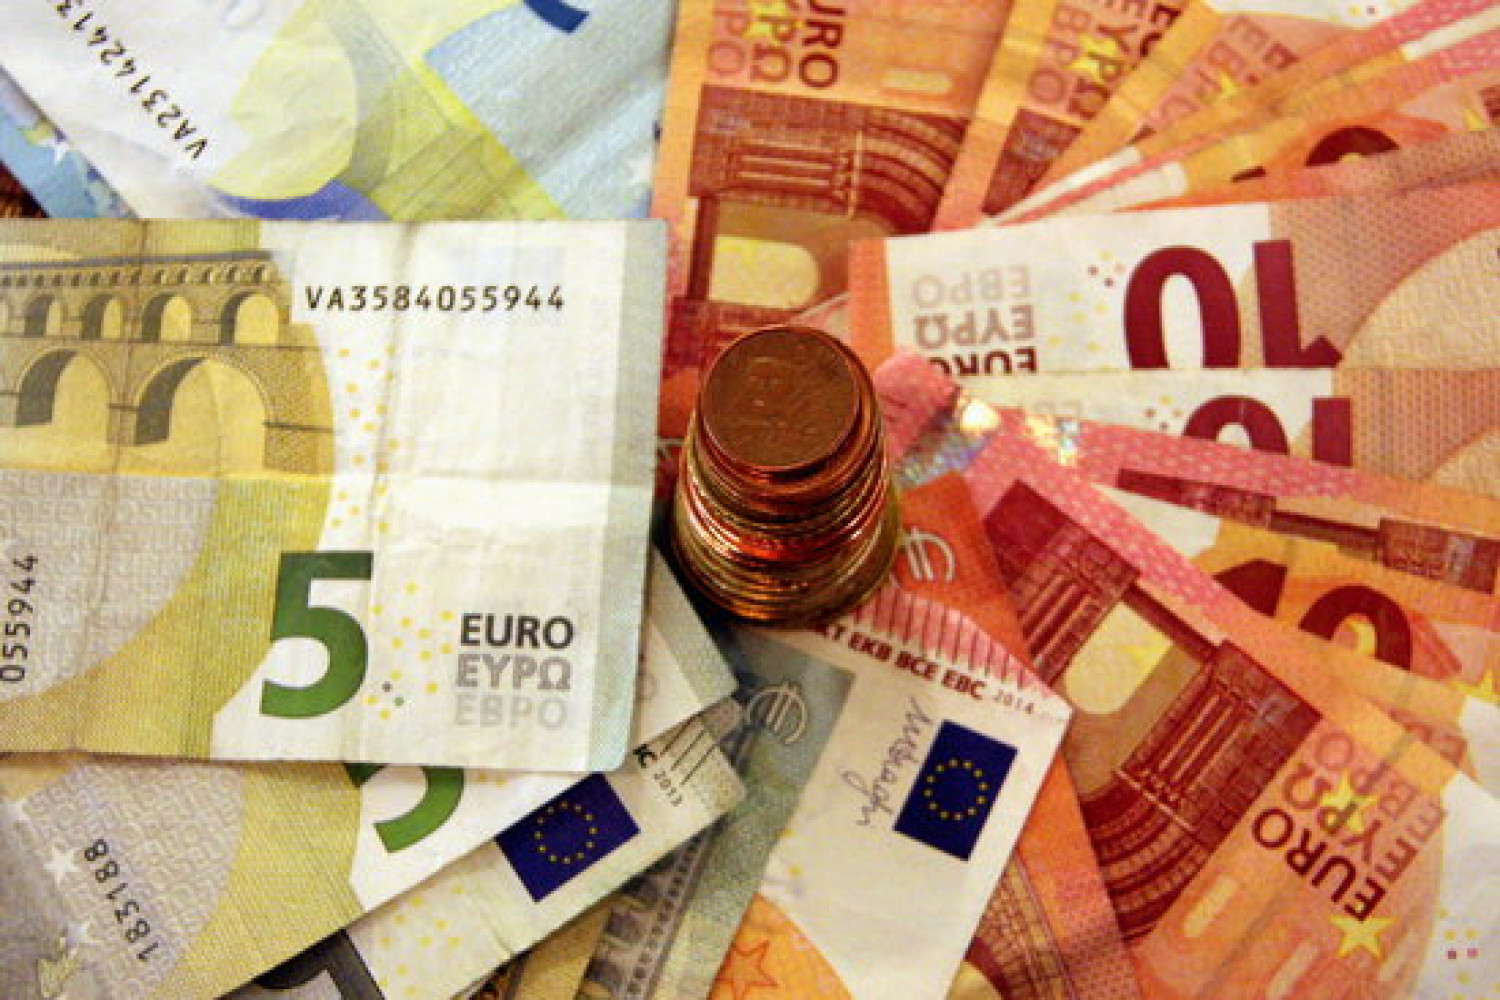 Euro bills and coins (by M. Loperena)